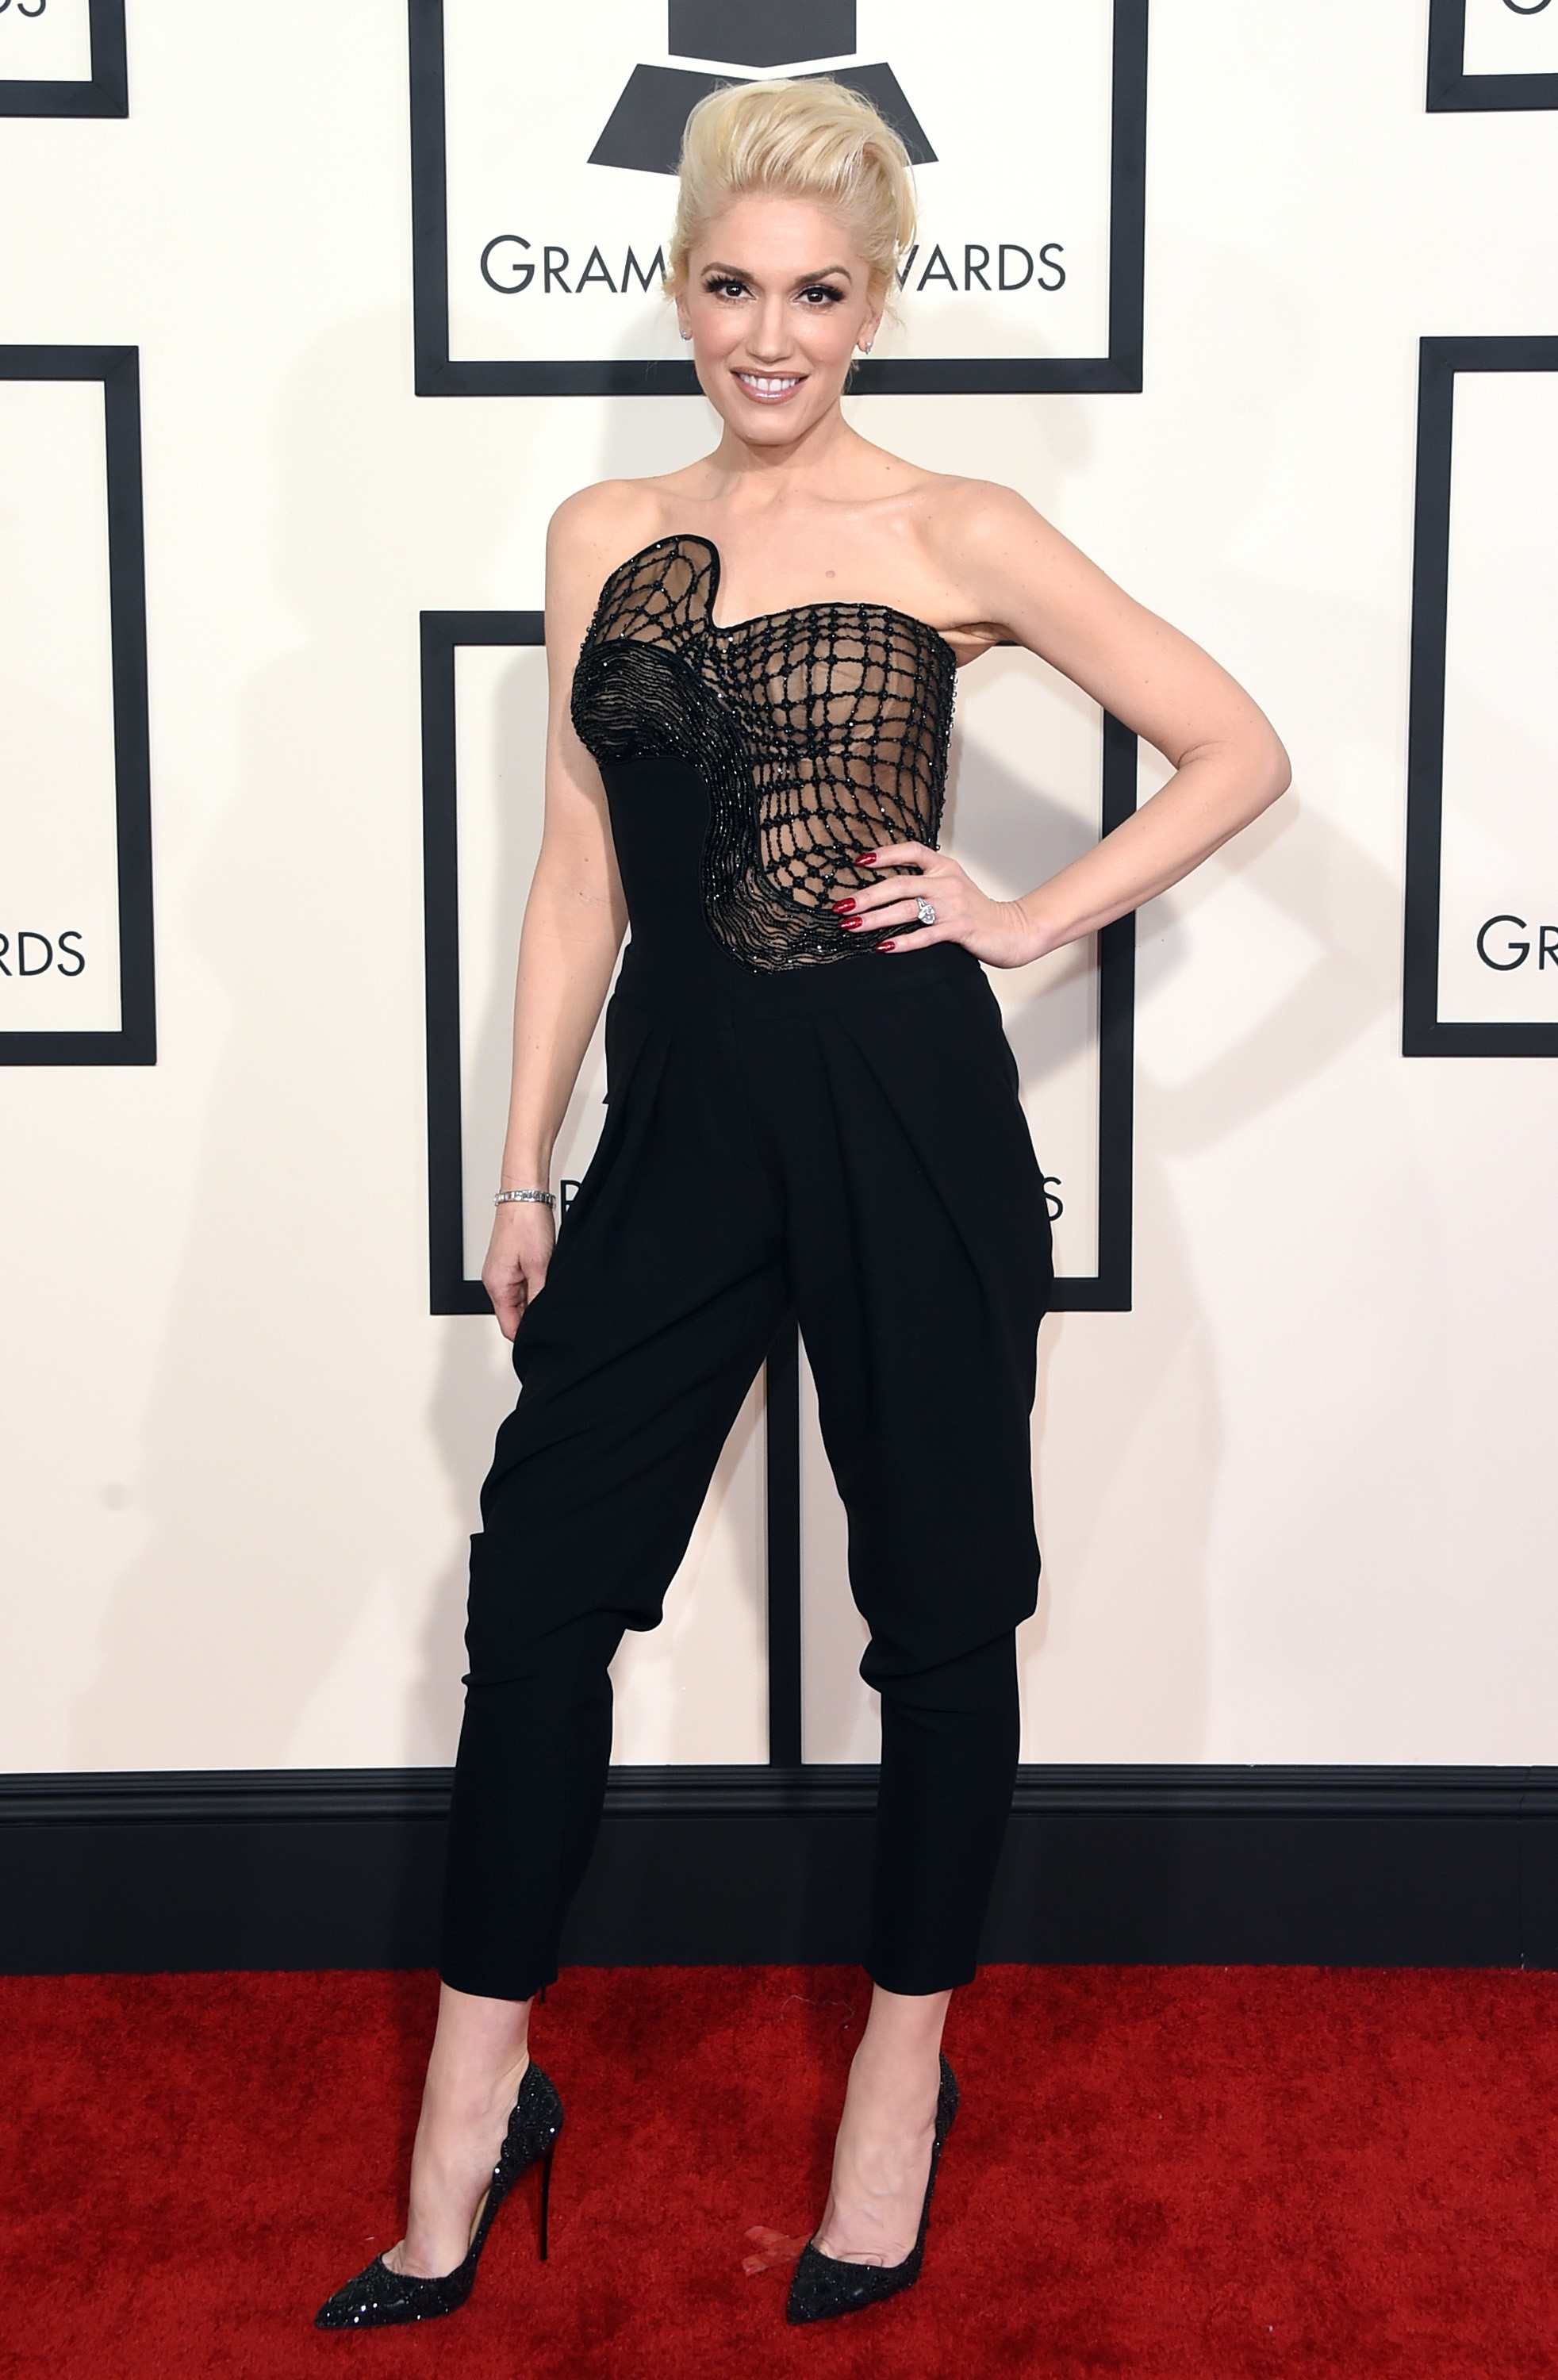 Gwen Stefani attends the 57th Annual Grammy Awards at the Staples Center on Feb. 8, 2015 in Los Angeles, Calif.